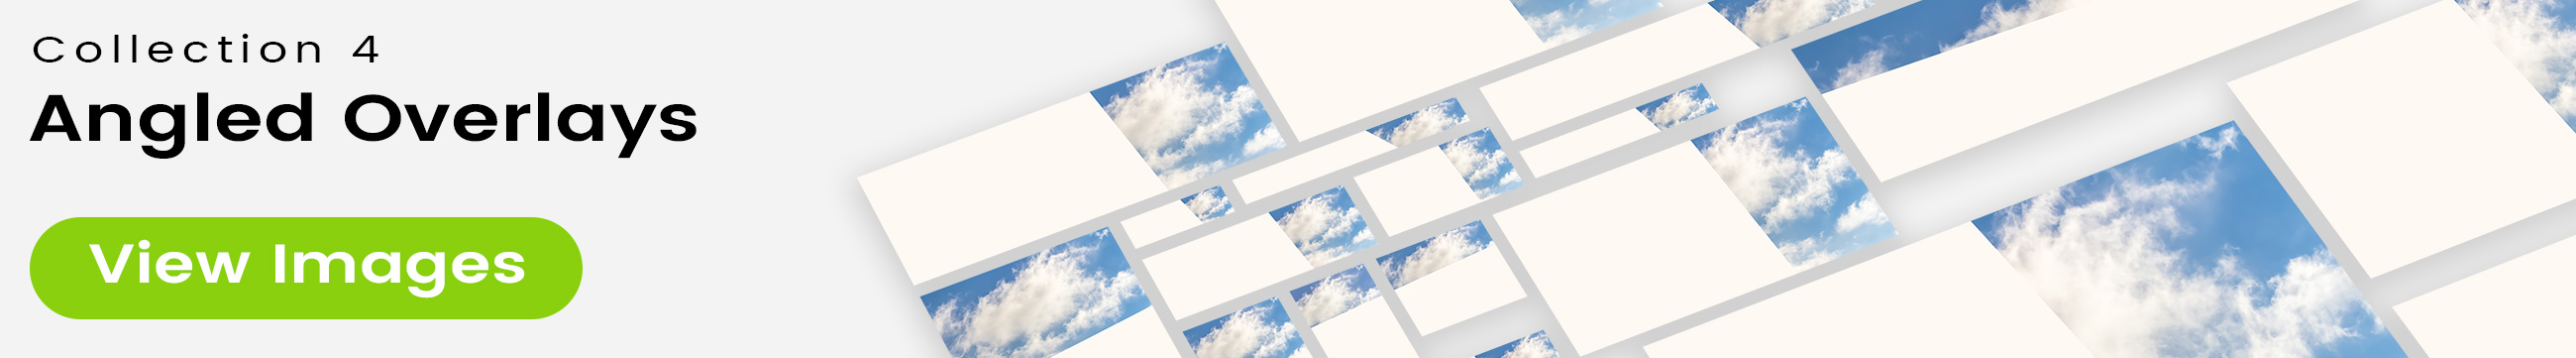 See 25 bonus images included with clouds stock image 9465. Collection 4 of 4 features an angled overlay design customized with a color that complements each photo.